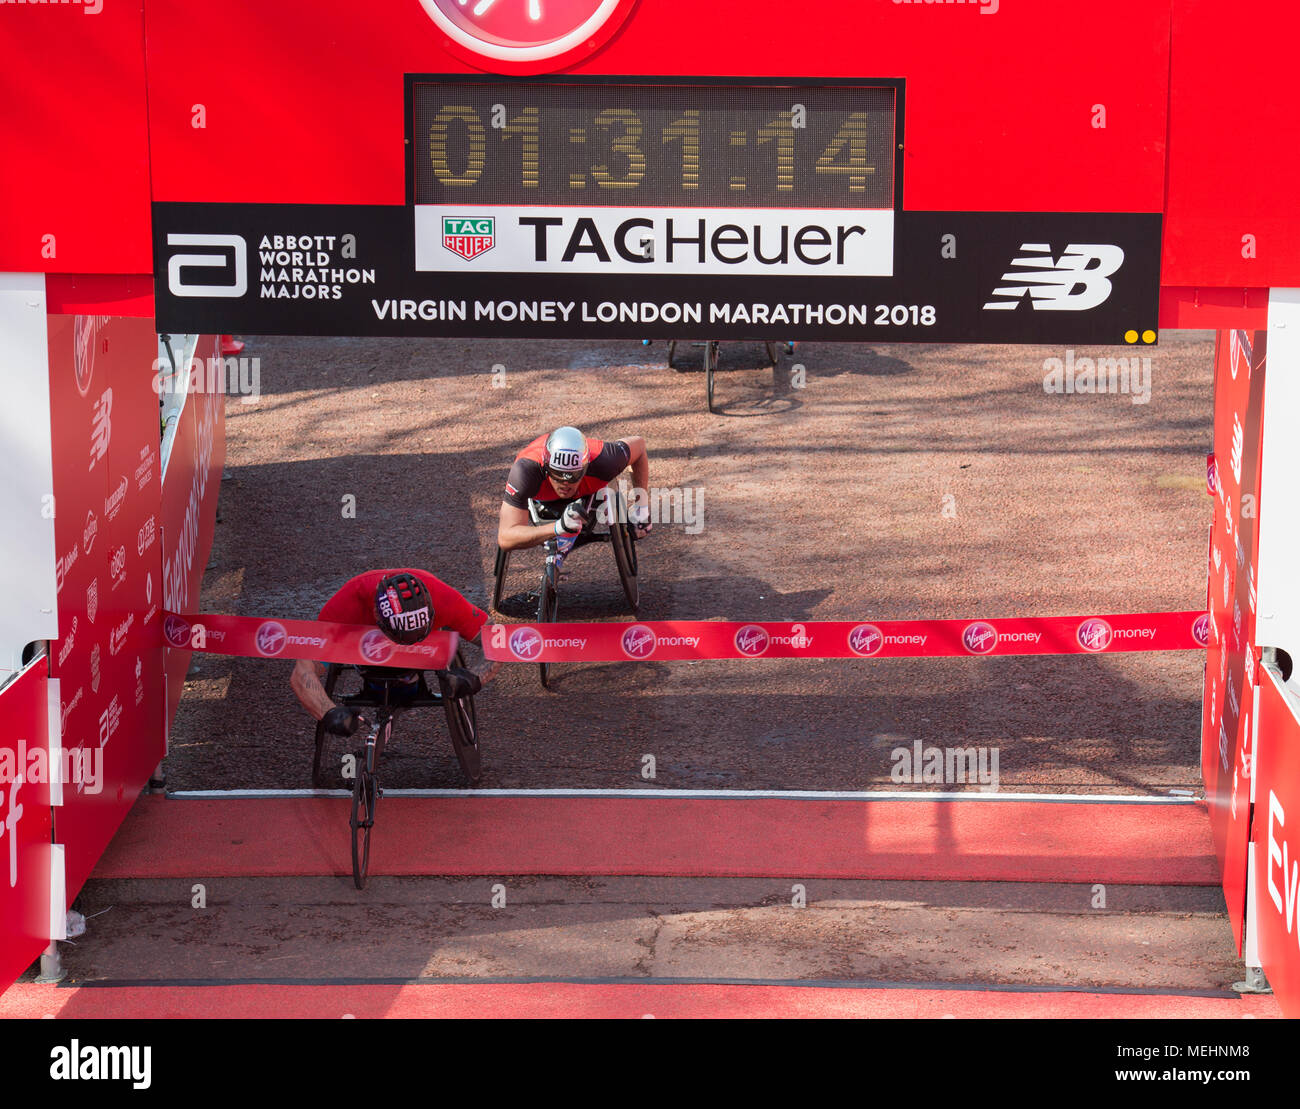 The Mall, London, UK. 22 April 2018. The Virgin Money London Marathon takes place in hot sun with athletes finishing on The Mall. David Weir (GBR) winning Elite Men's Wheelchair race. Credit: Malcolm Park/Alamy Live News. Stock Photo